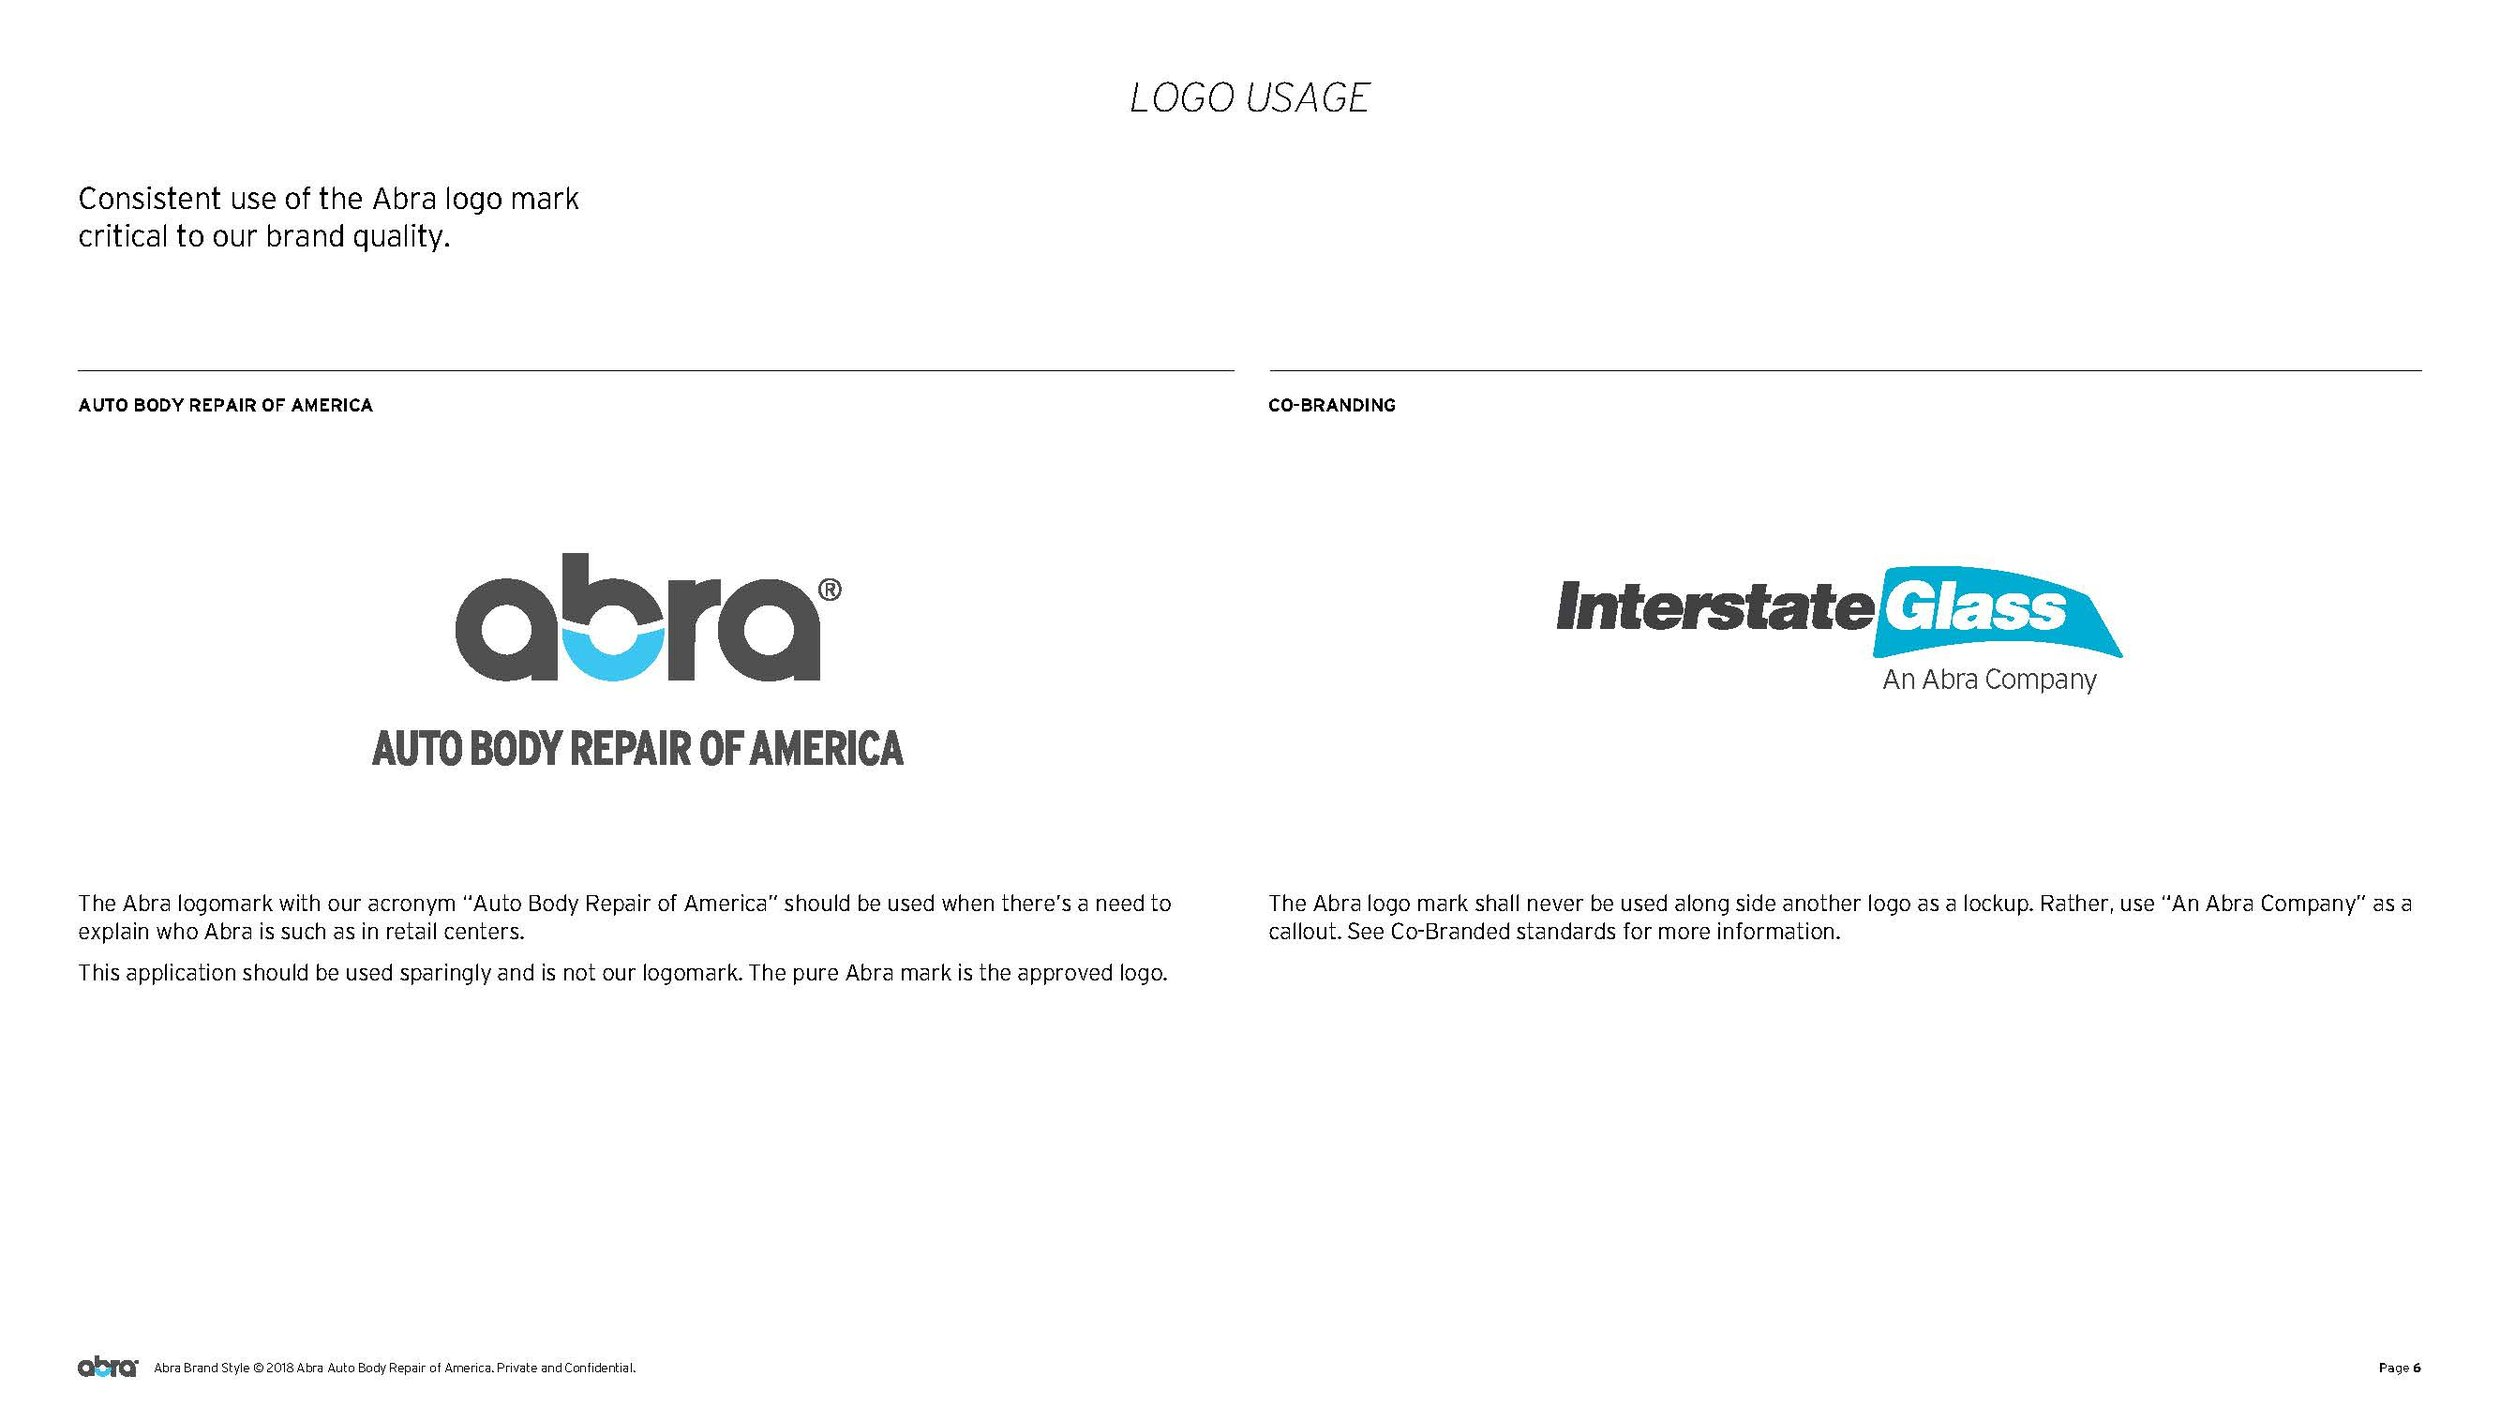 abra brand style guide - R5_Page_06.jpg